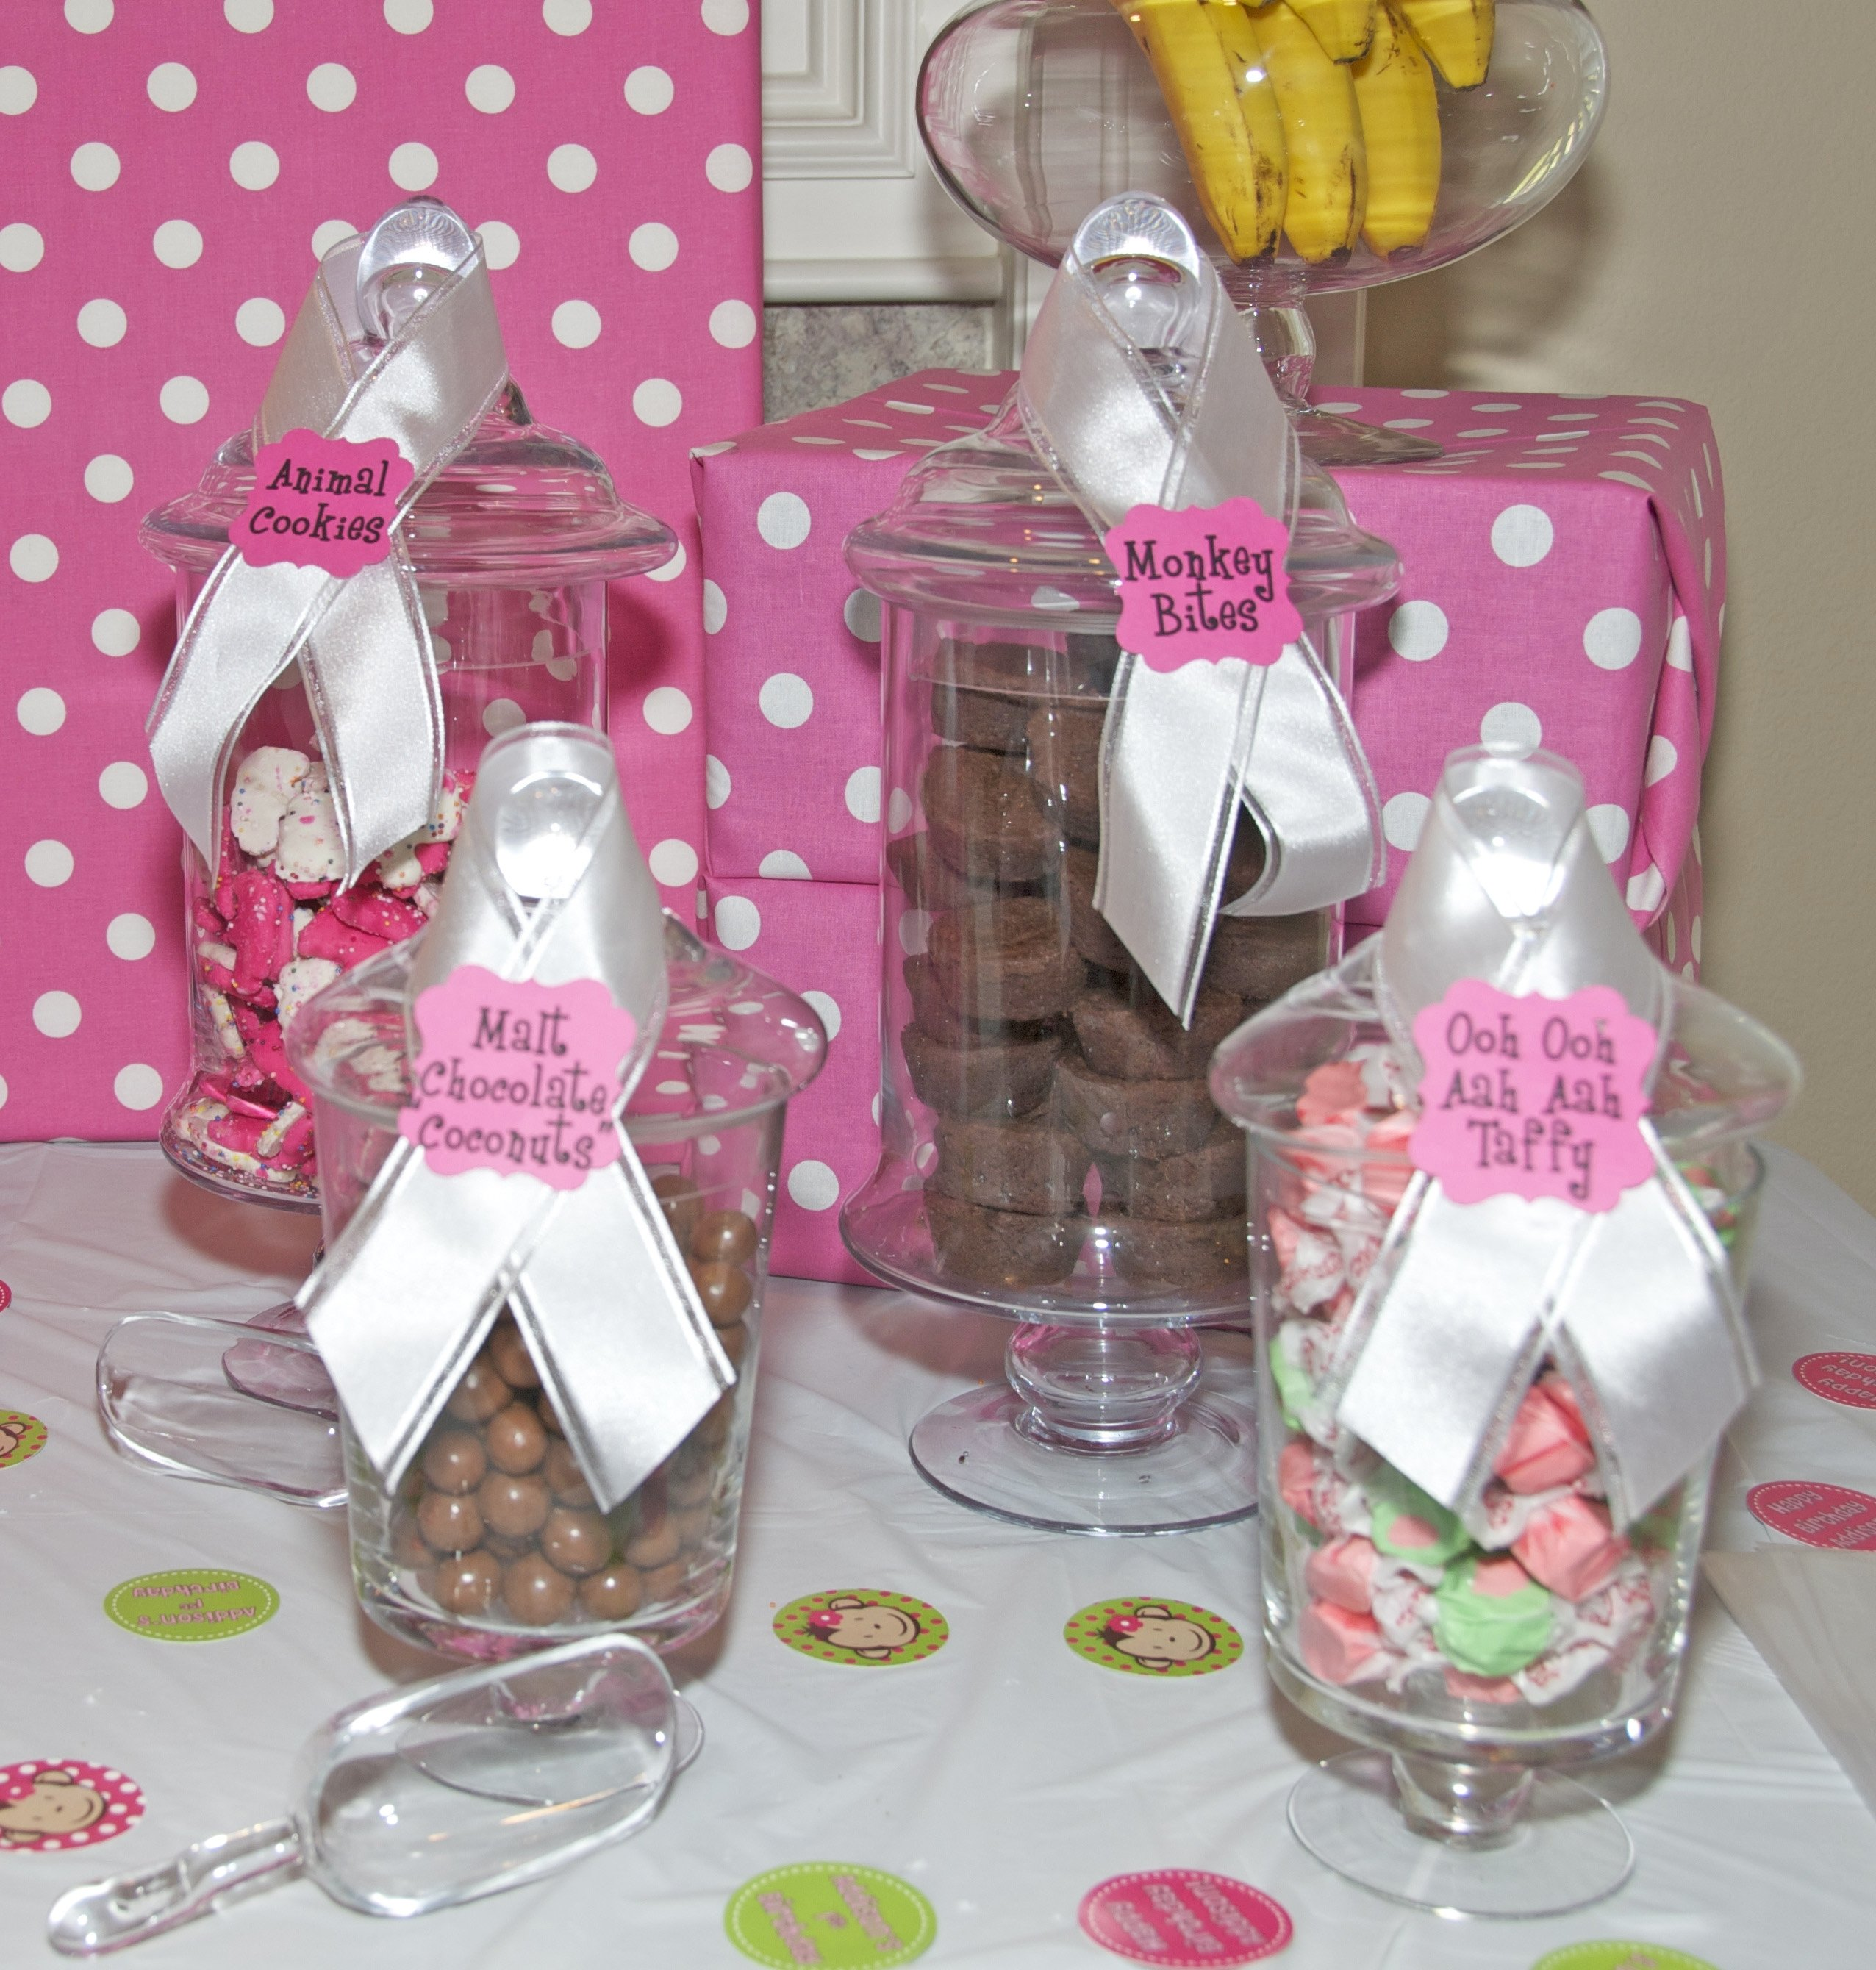 10 Gorgeous Ideas For Centerpieces For Baby Shower baby shower centerpiece ideas for a girl omega center ideas 2021